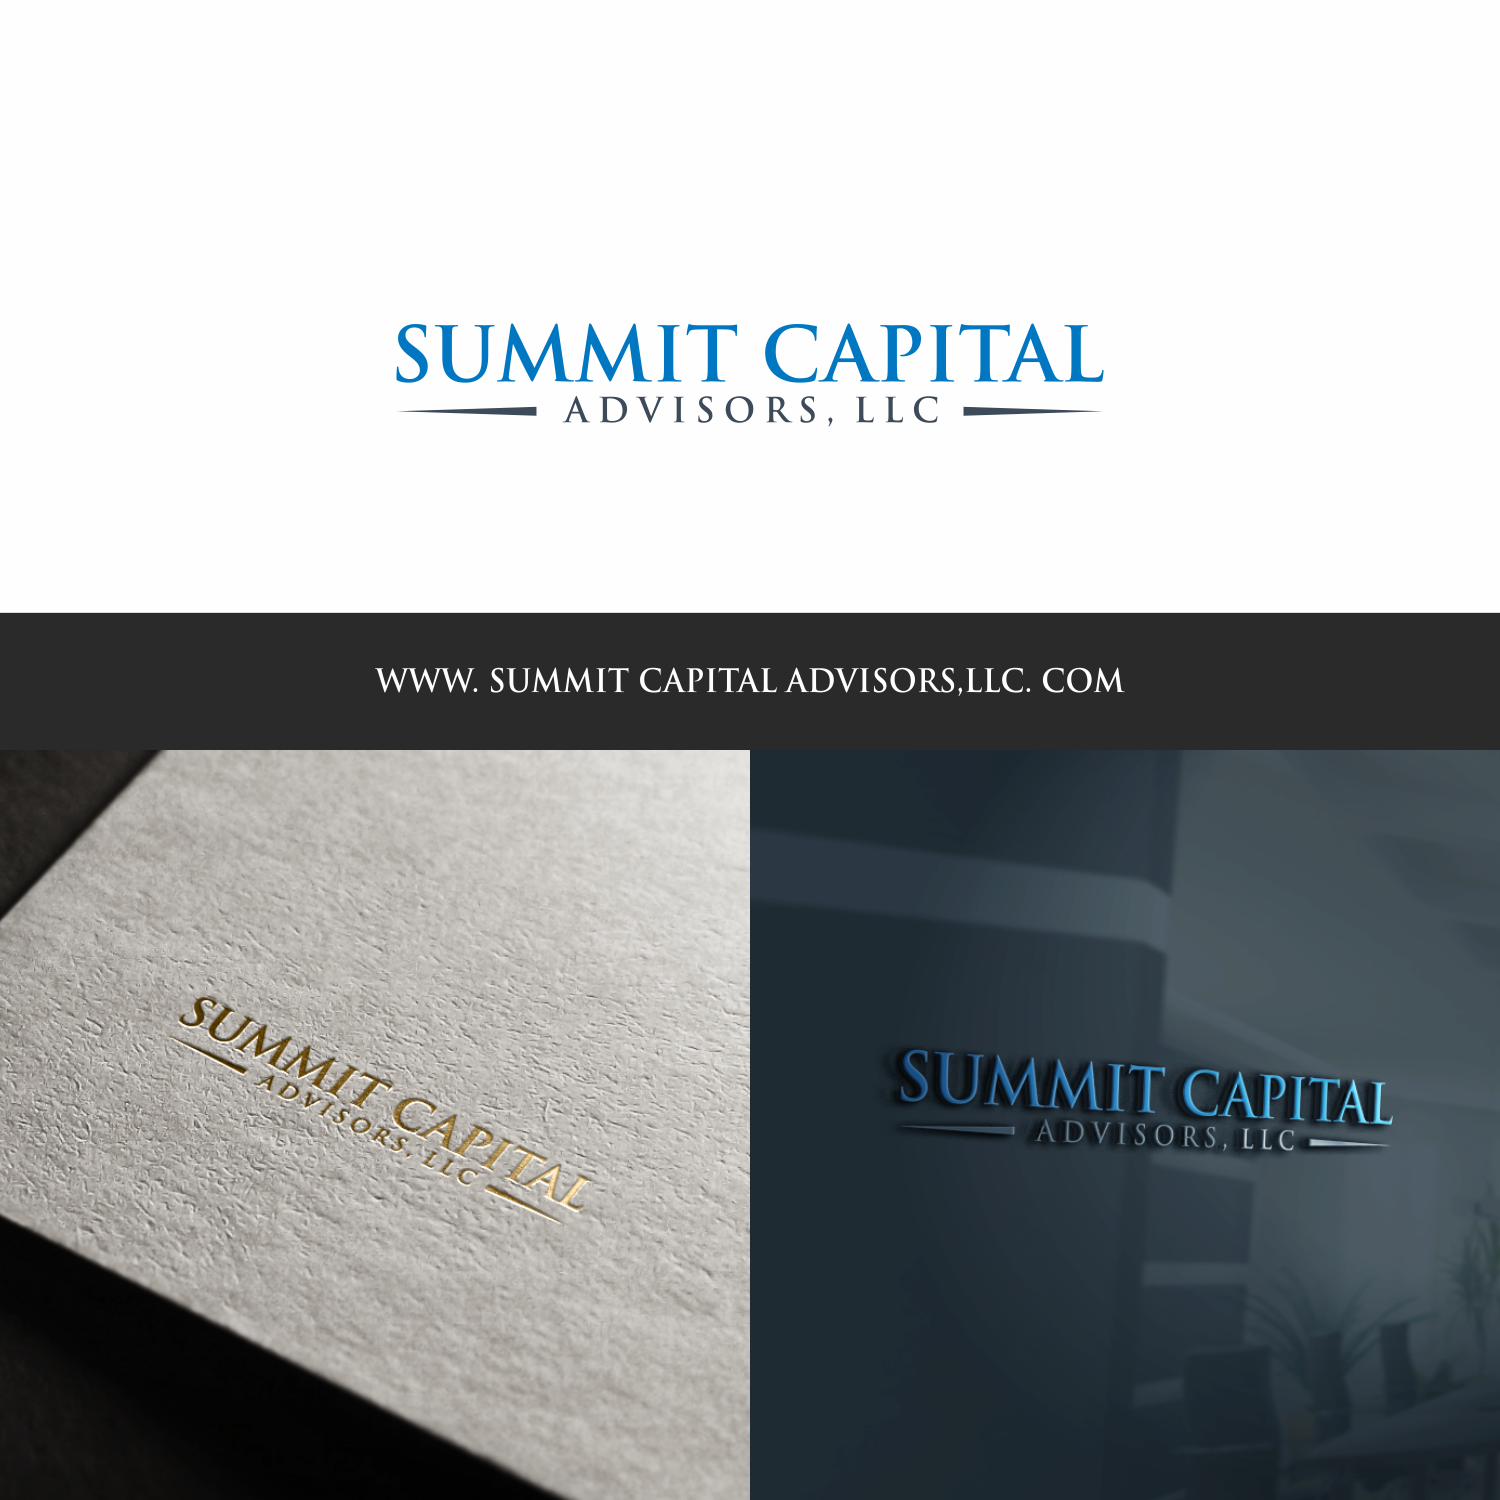 Serious, Conservative Logo Design for Summit Capital